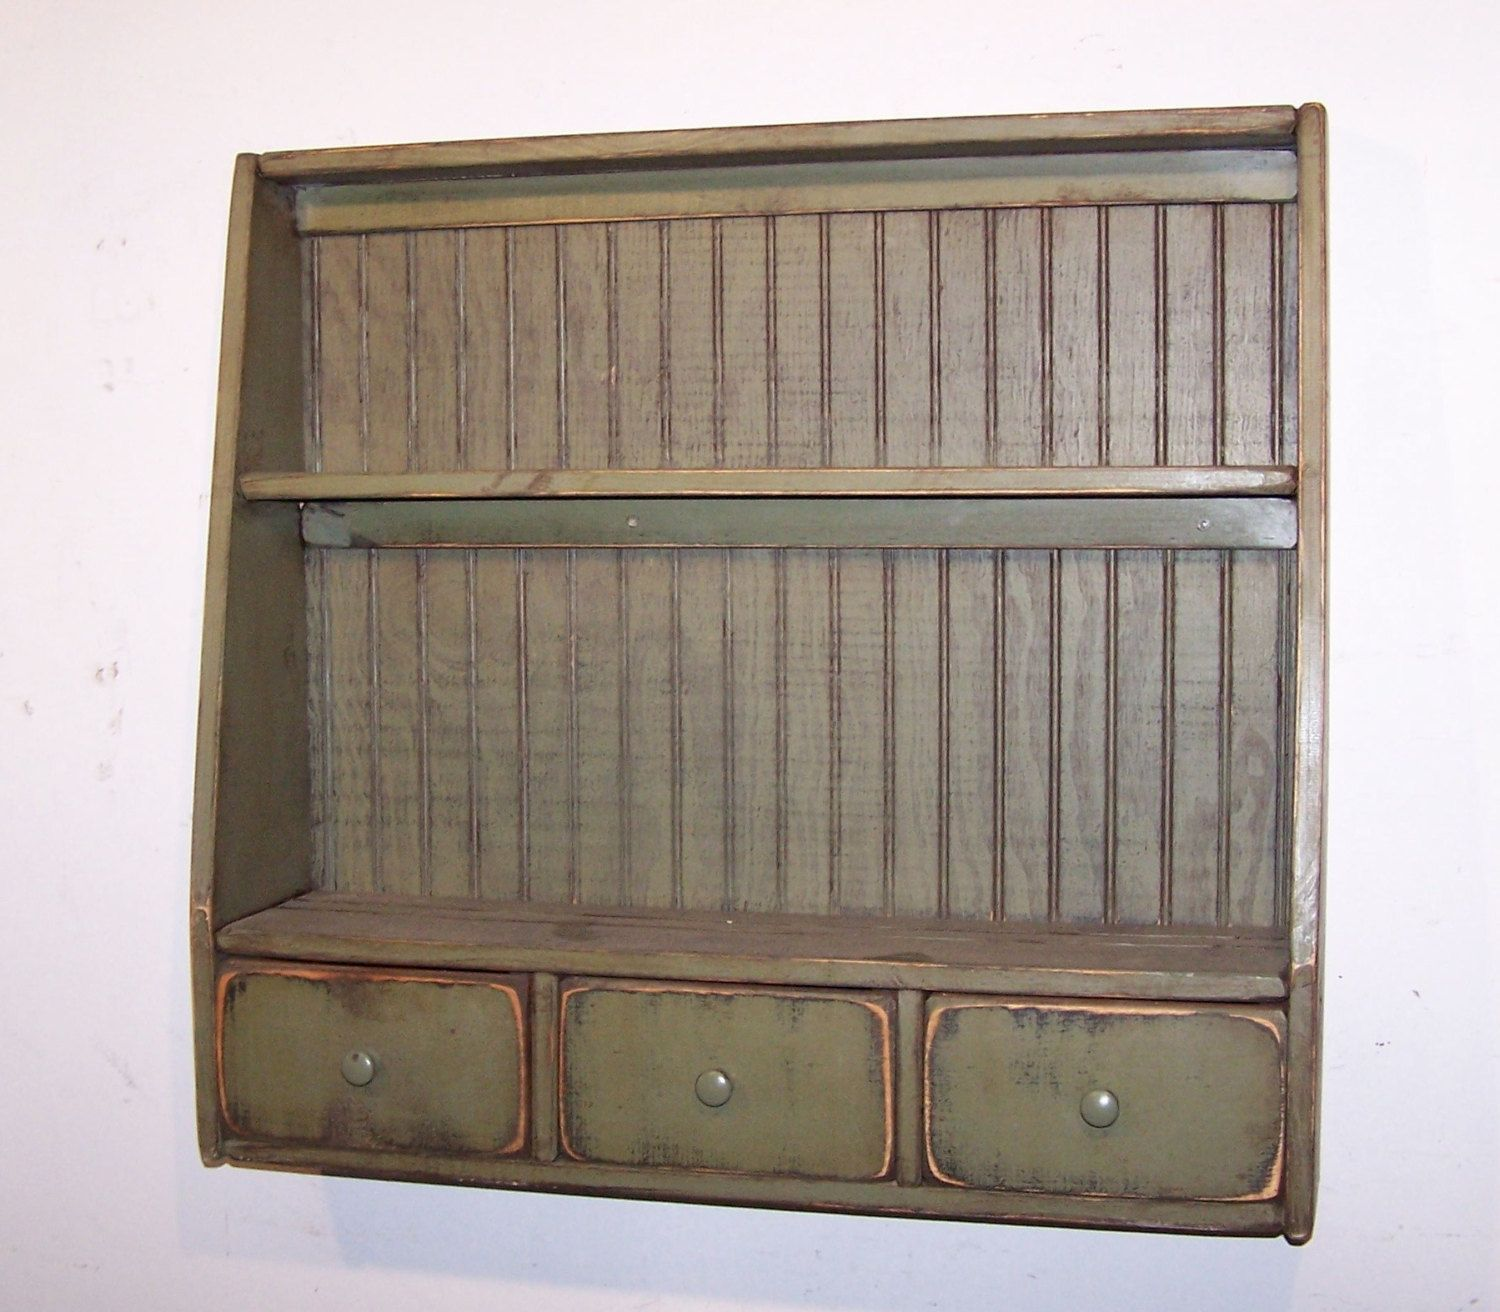 Primitive Plate Rack with 3 Drawers and by WillowIslandPrim $139.99 & Primitive Plate Rack with 3 Drawers and by WillowIslandPrim $139.99 ...